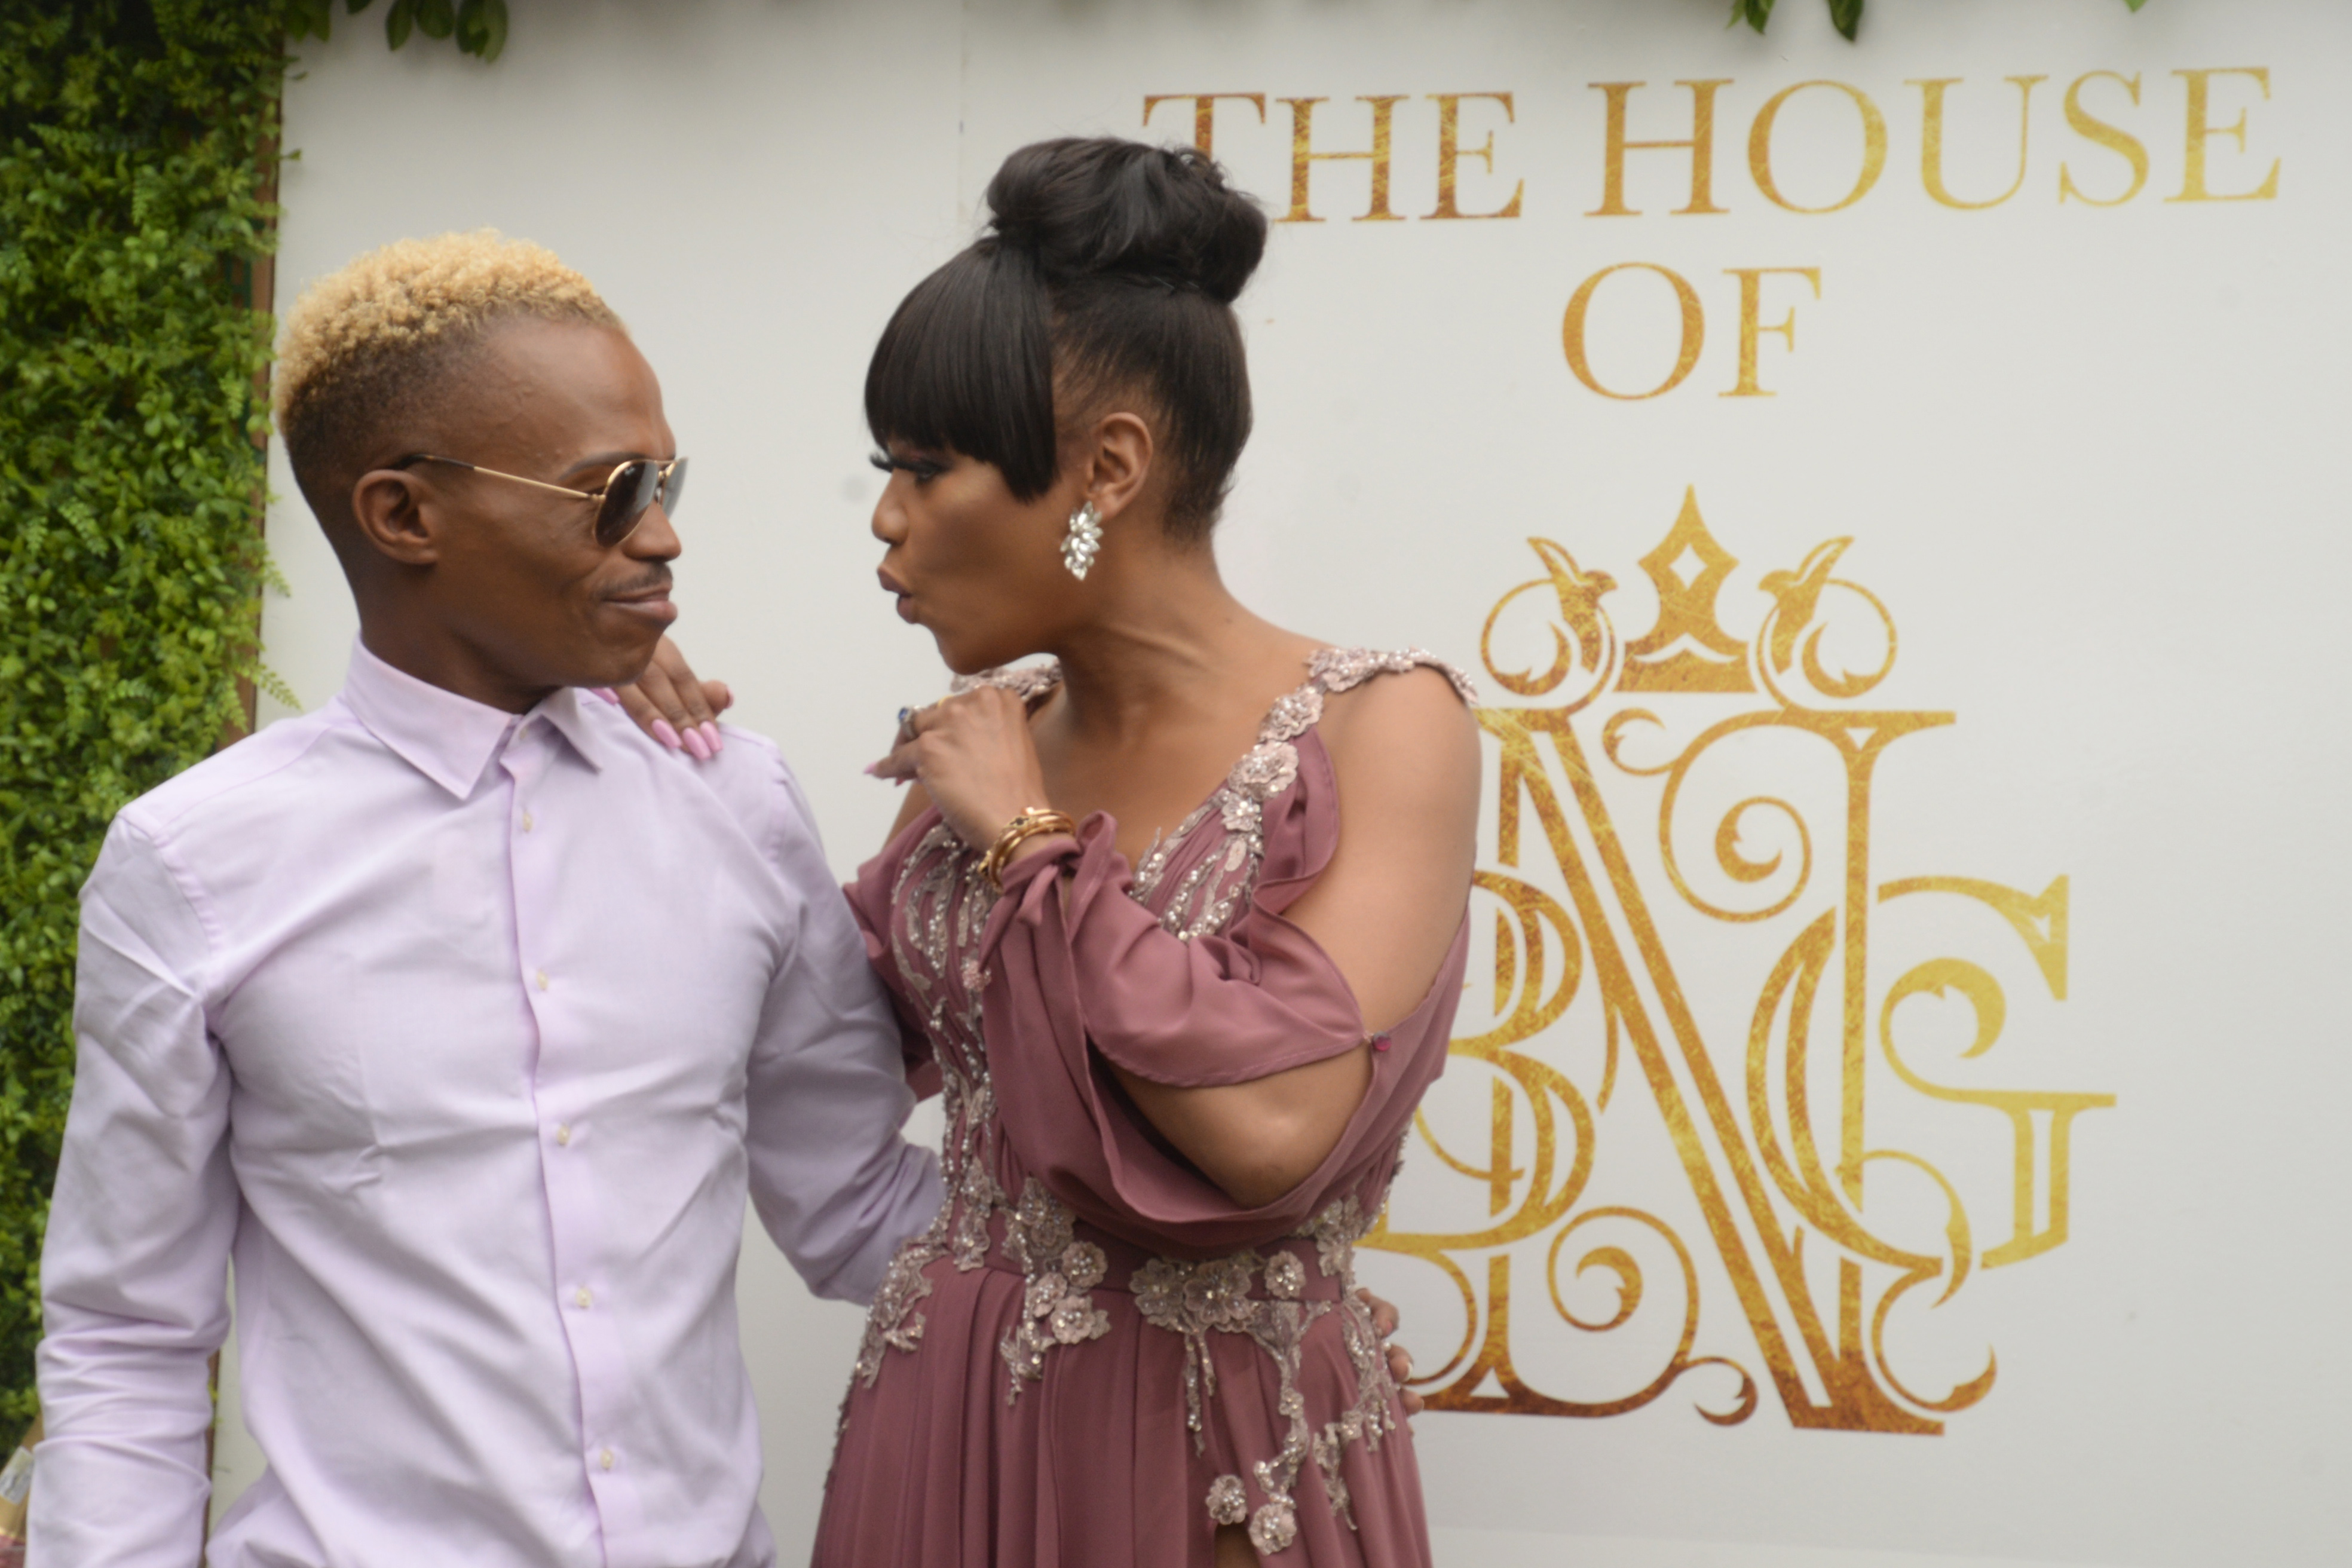 Somizi Mhlongo and Bonag Matheba during the House of BNG BY BONANG launch at the Riboville Boutique Hotel, Waterfall Estate on March 18, 2019 in Johannesburg.